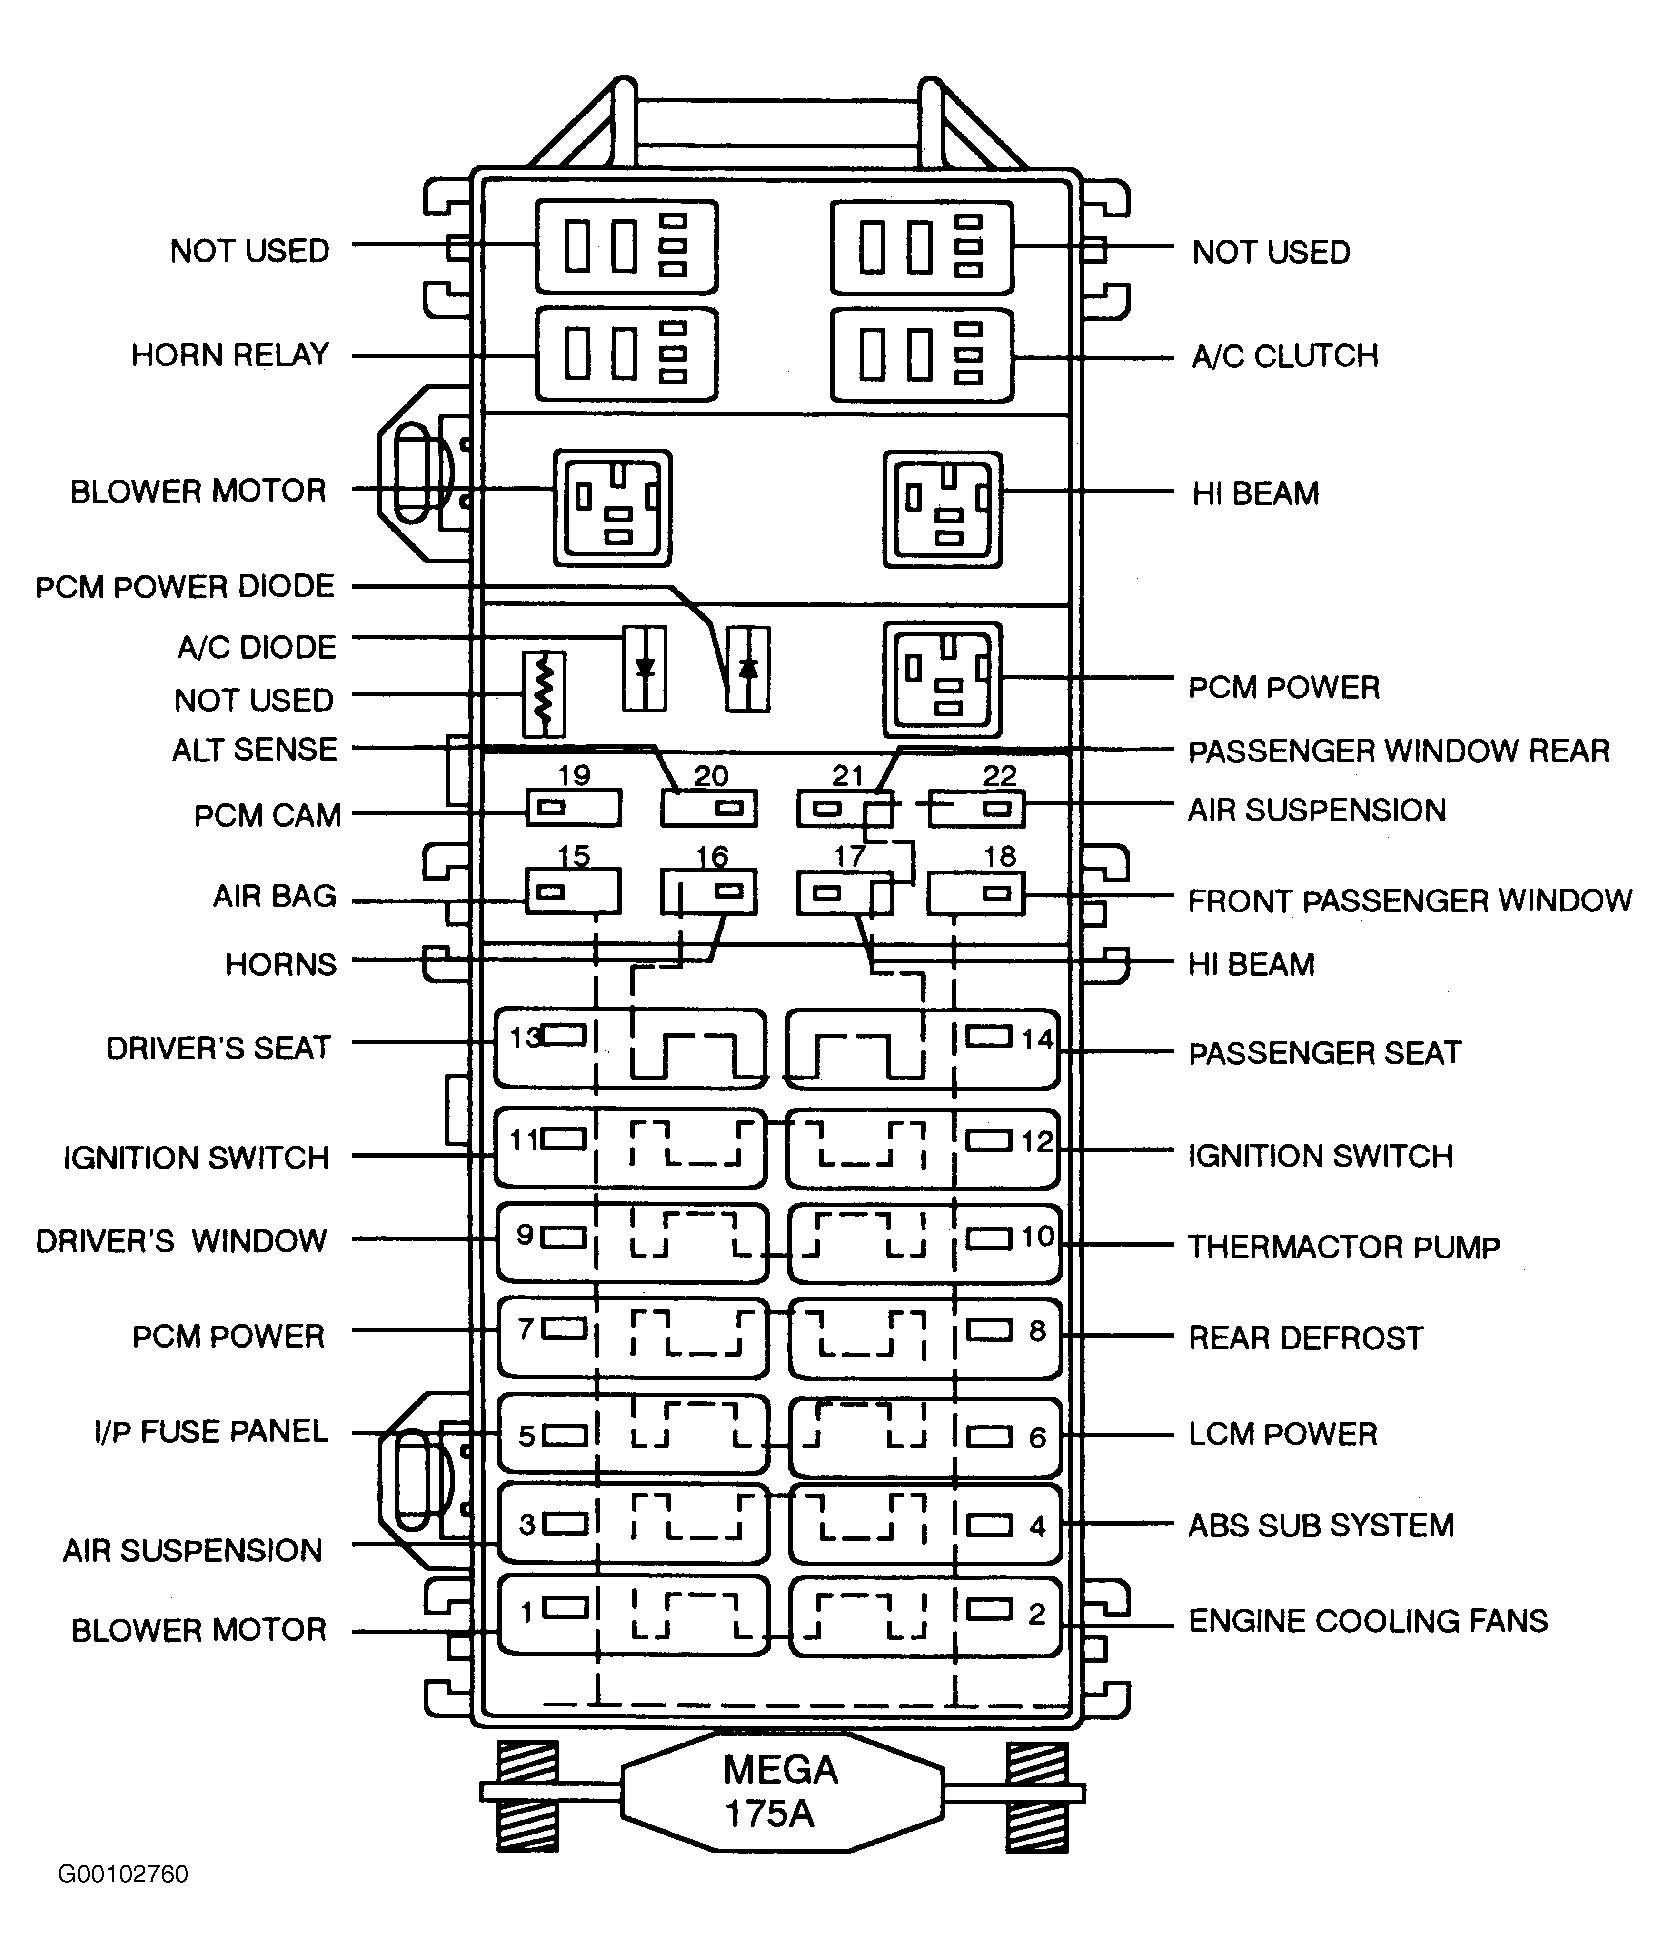 2007 Lincoln Fuse Box Diagram.html